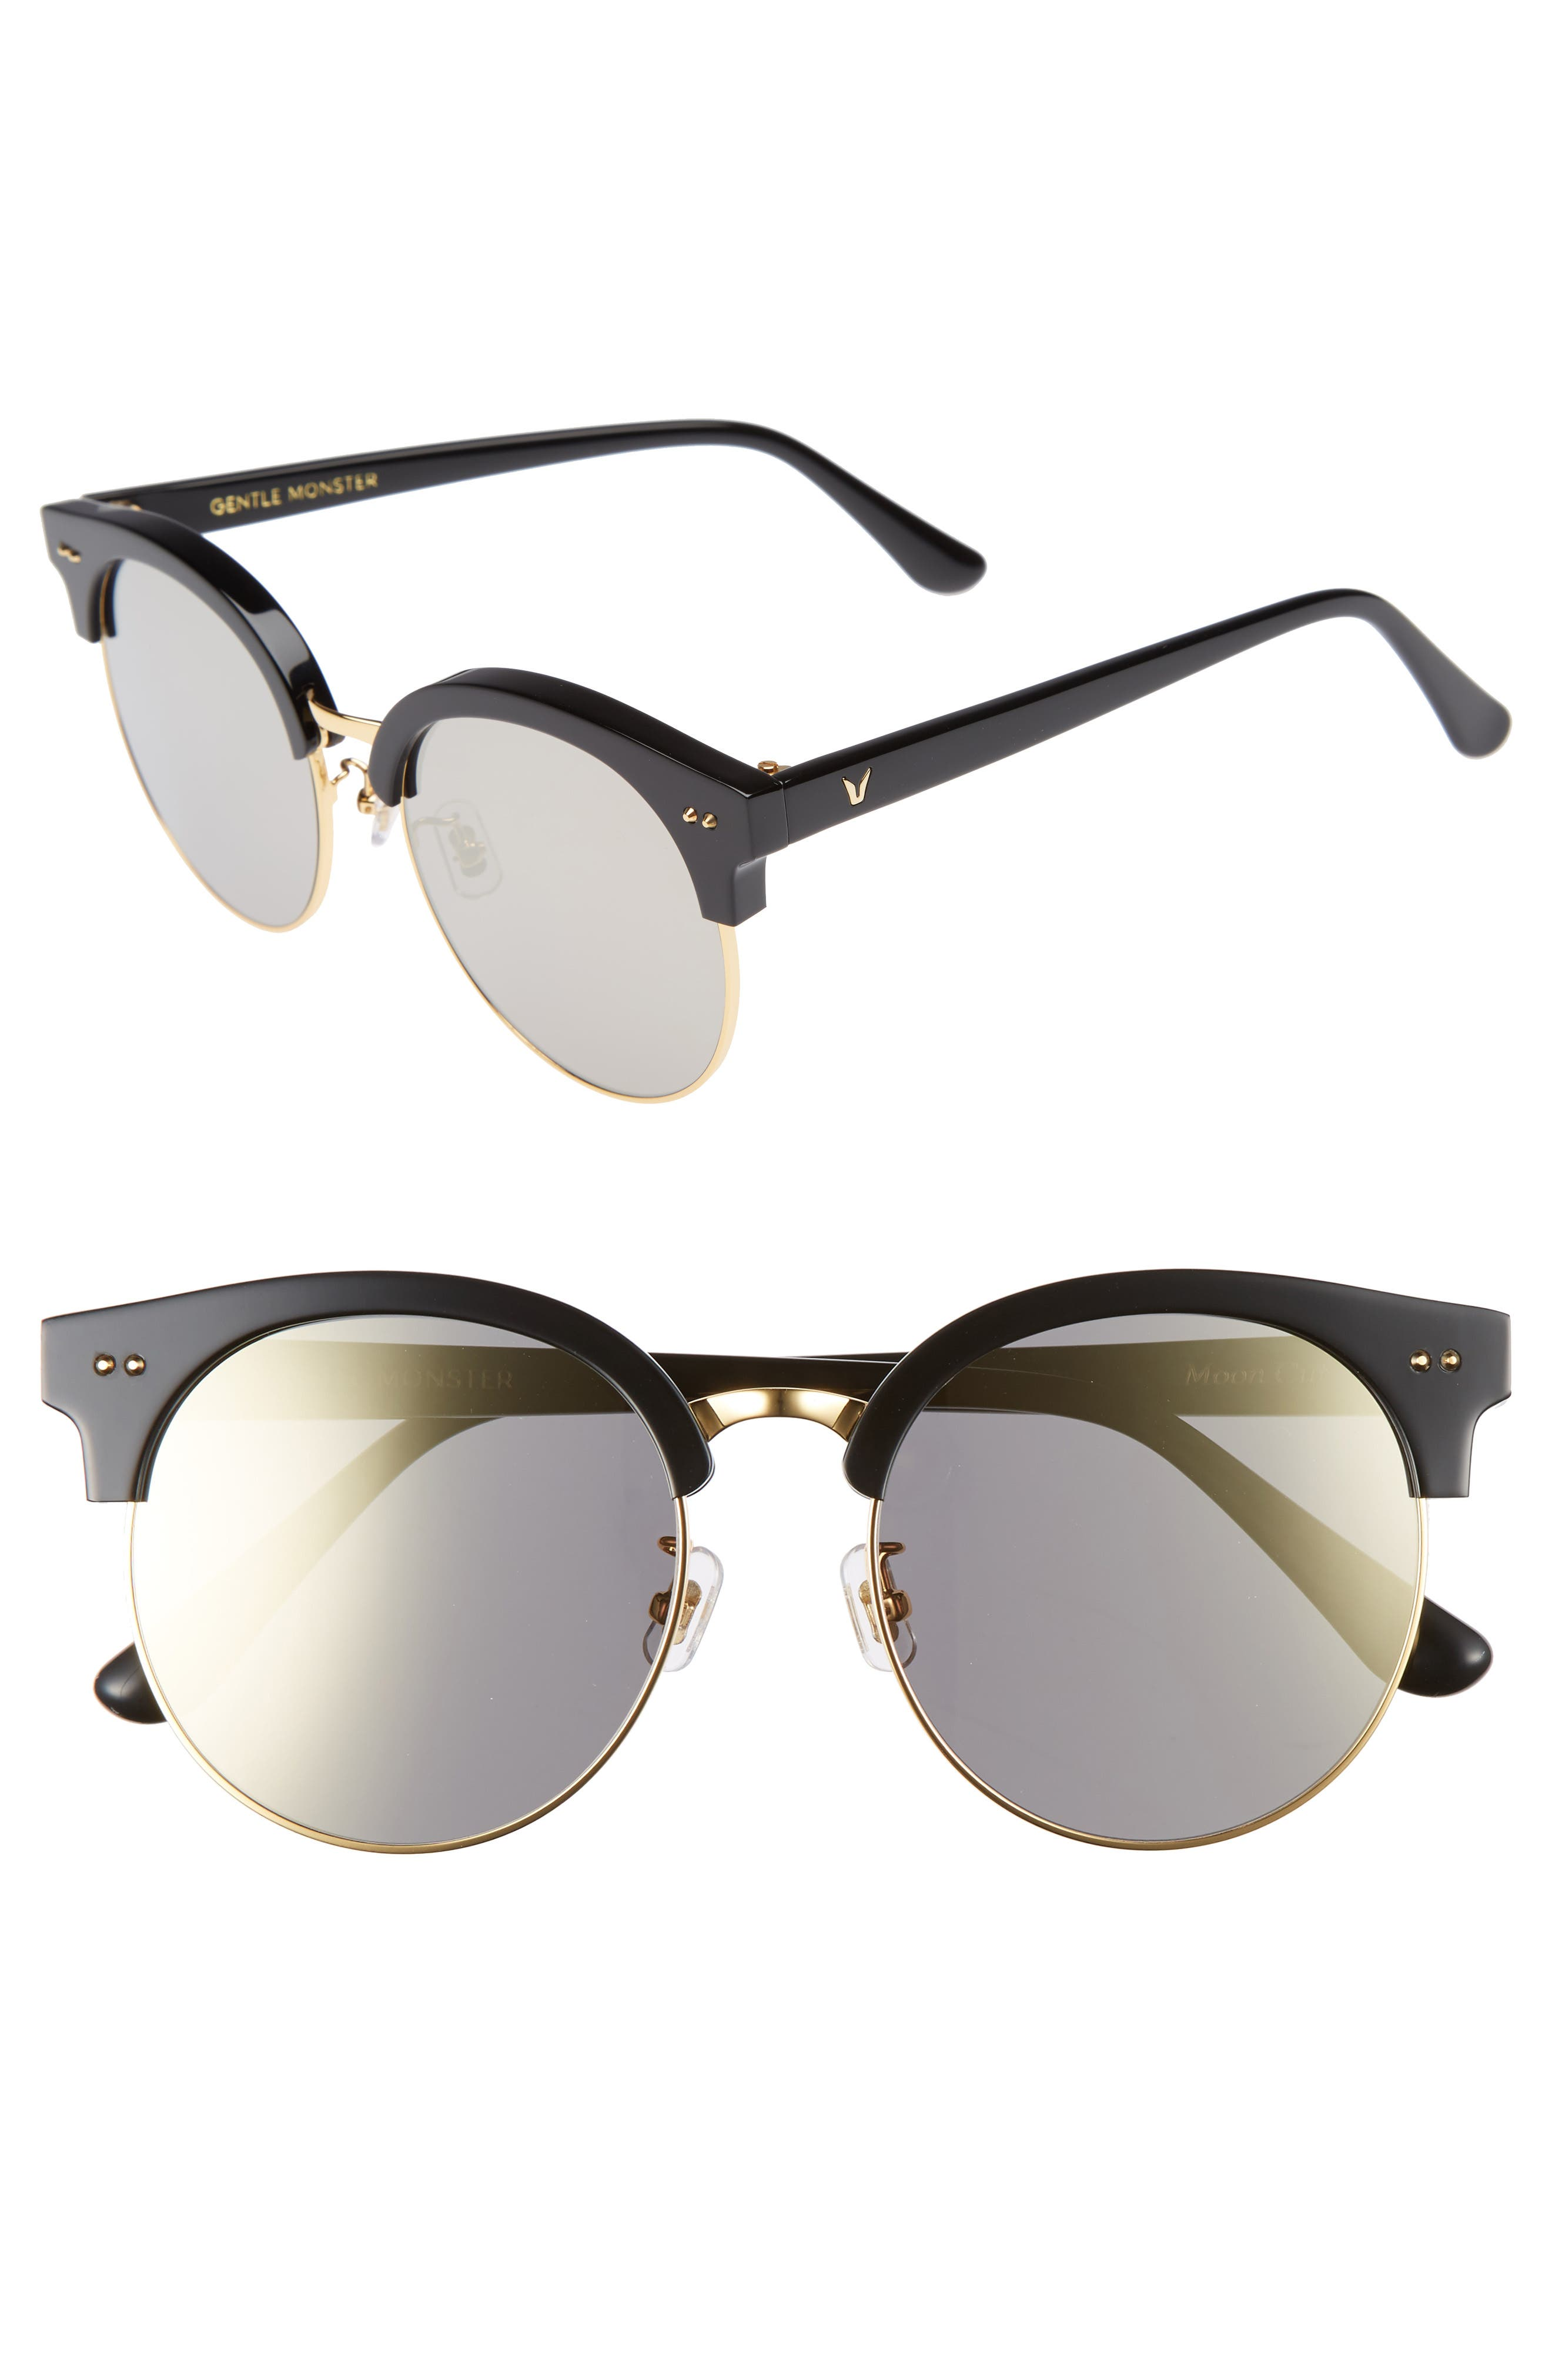 Alternate Image 1 Selected - Gentle Monster Moon Cut 54mm Rounded Sunglasses